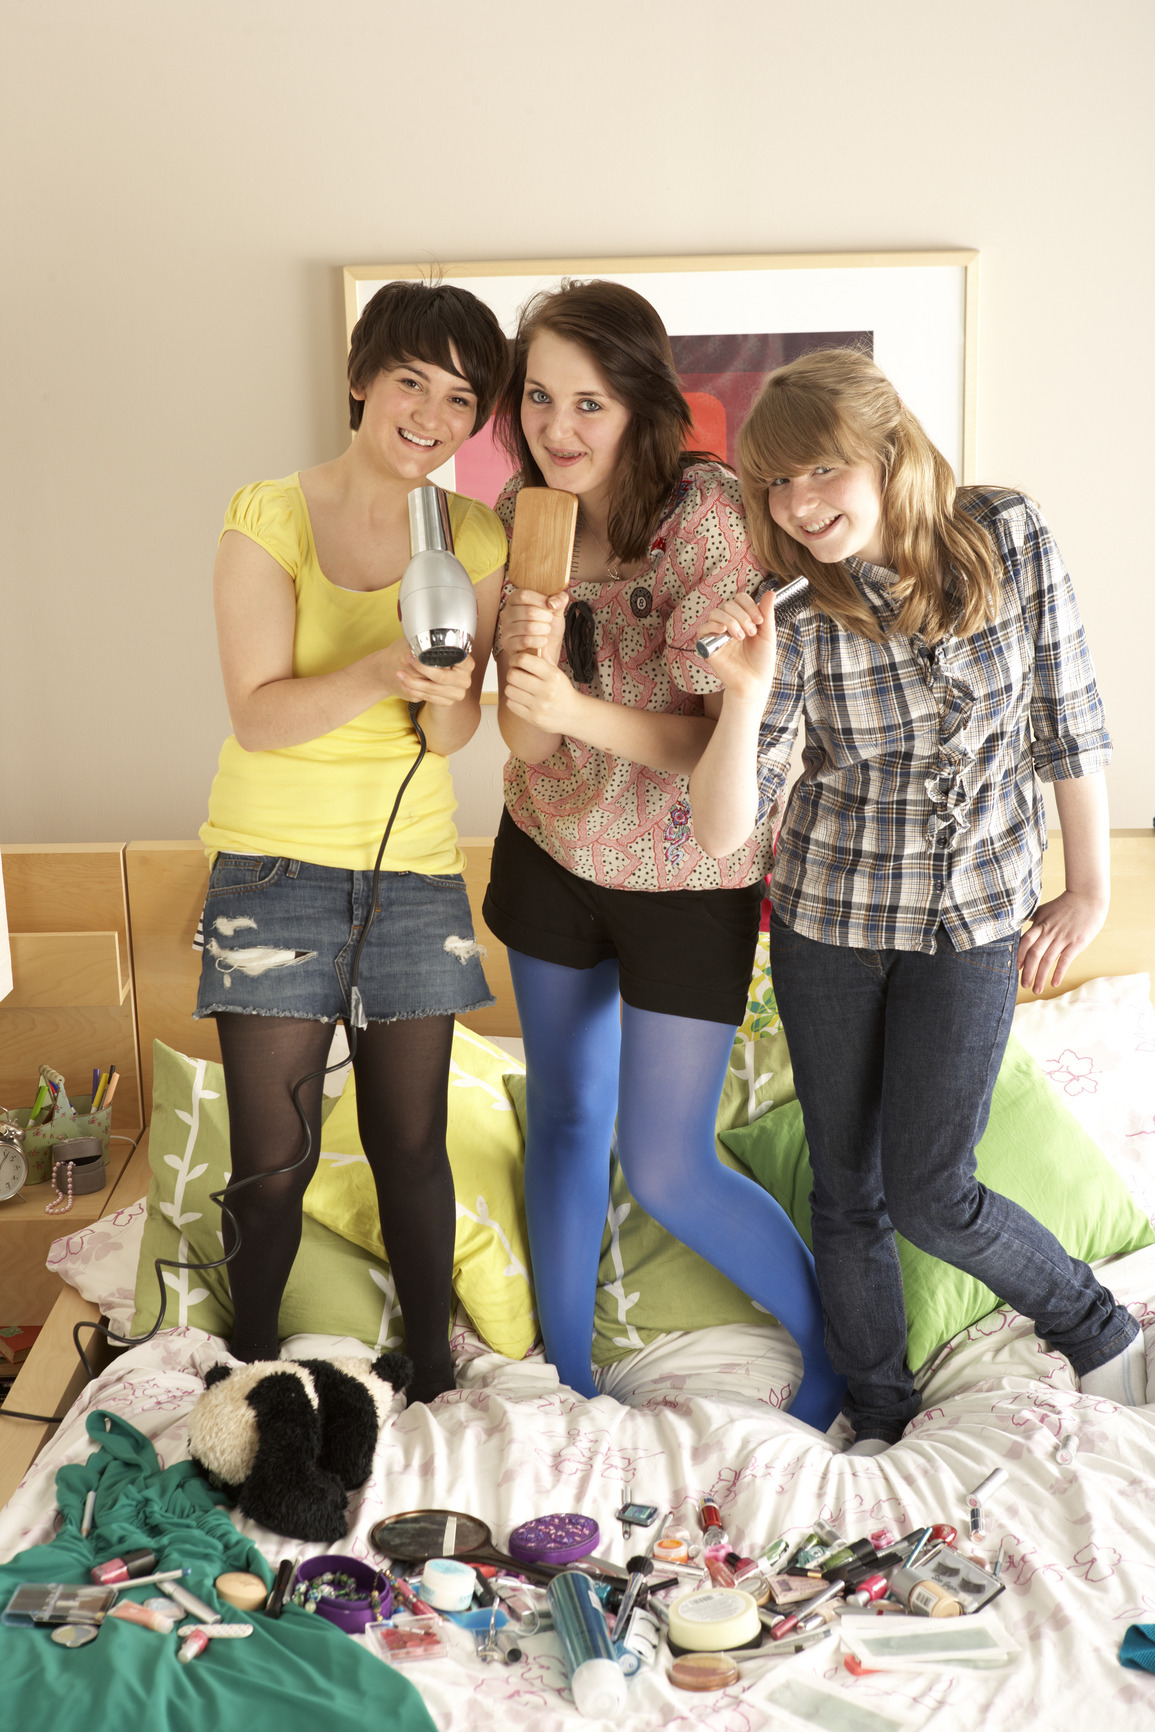 Group Of Teenage Girls Hanging Out In Untidy Bedroom